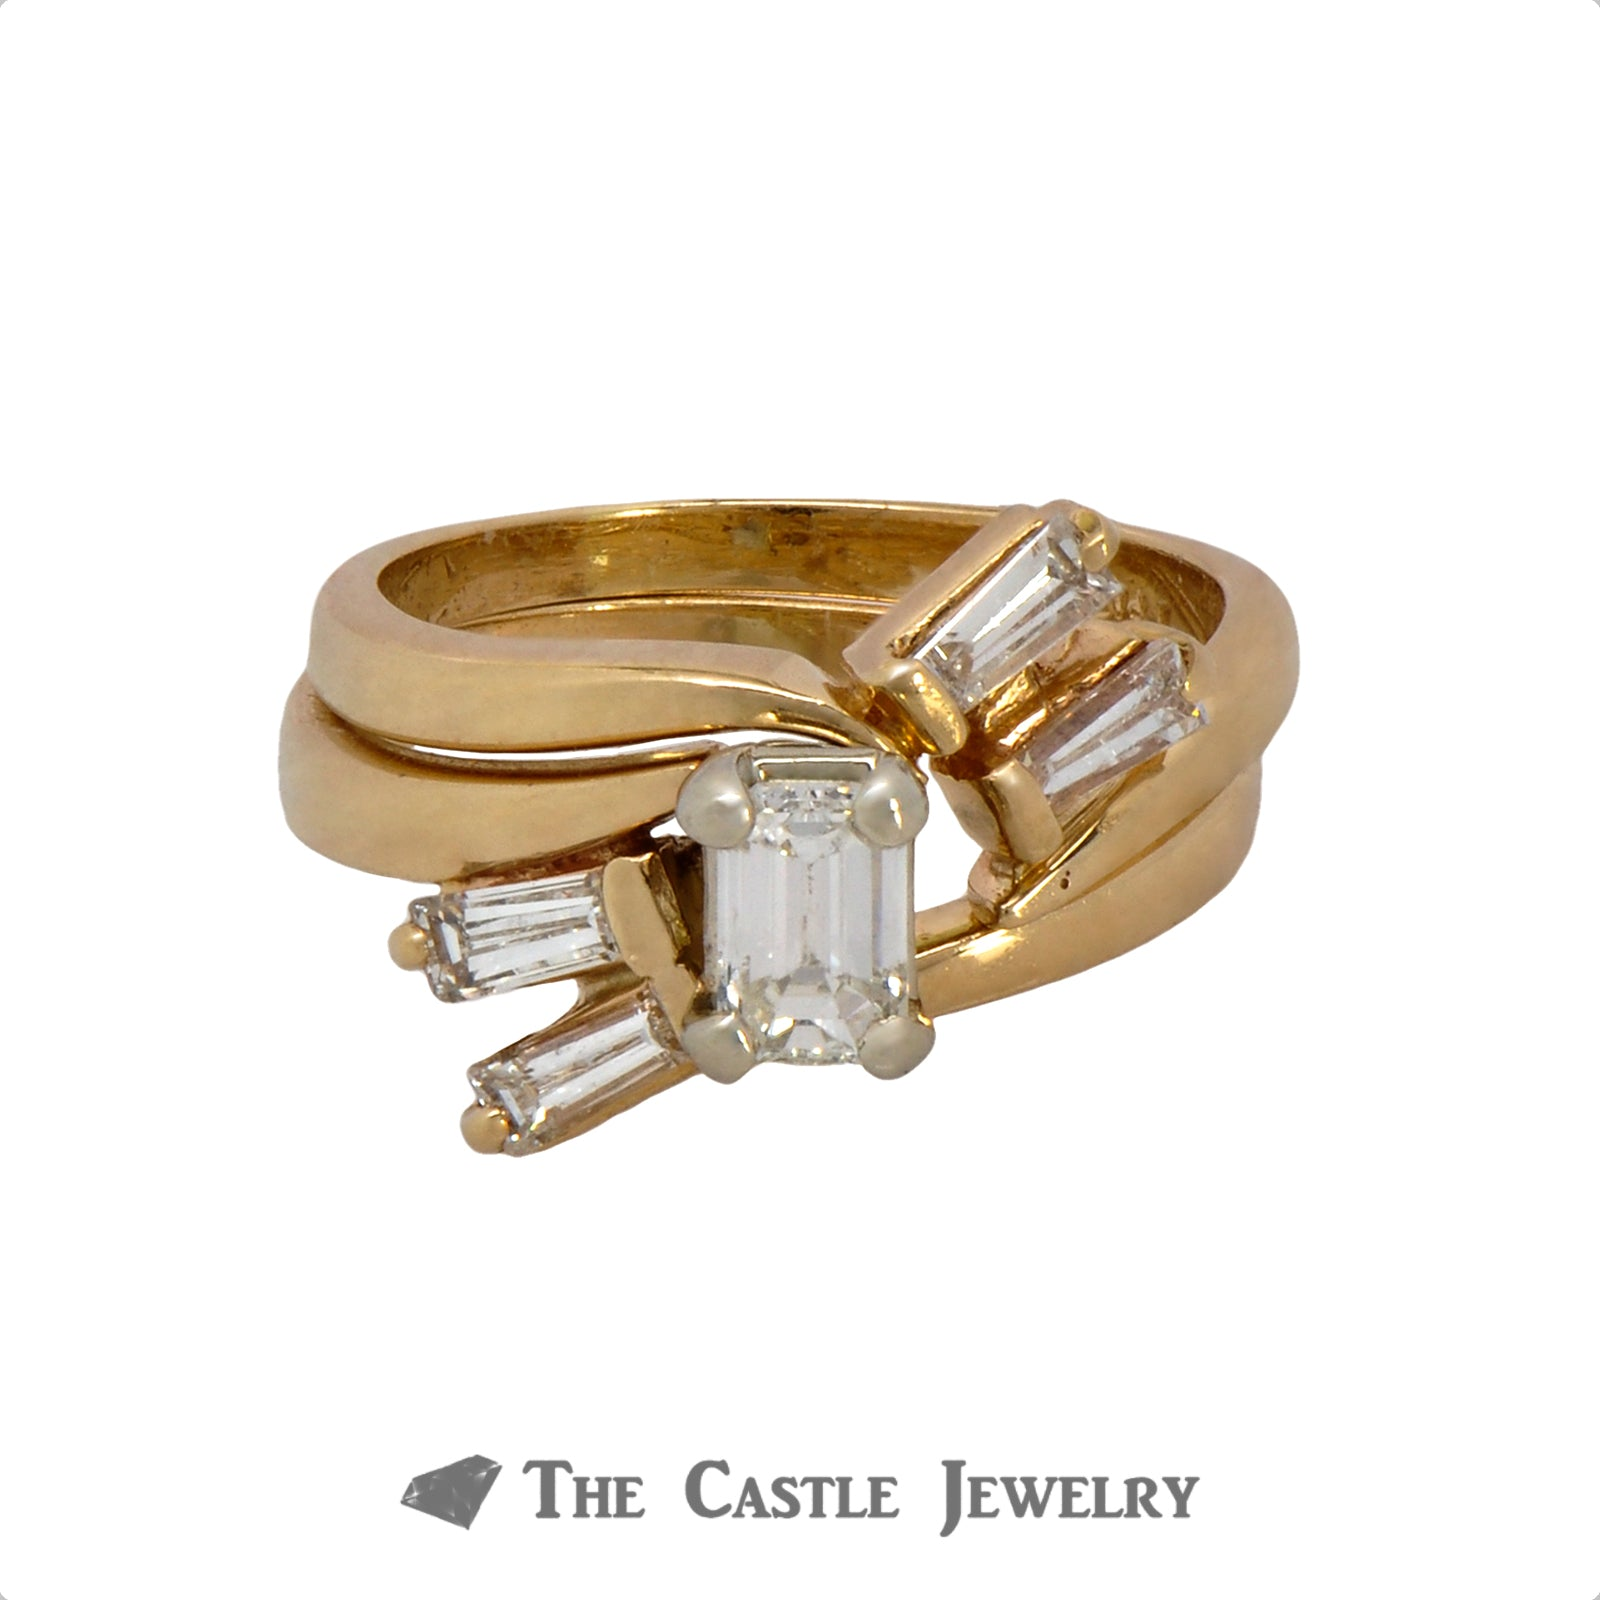 Emerald Cut Diamond Bridal Set with Baguette Diamond Accented Matching Band in 14k Yellow Gold